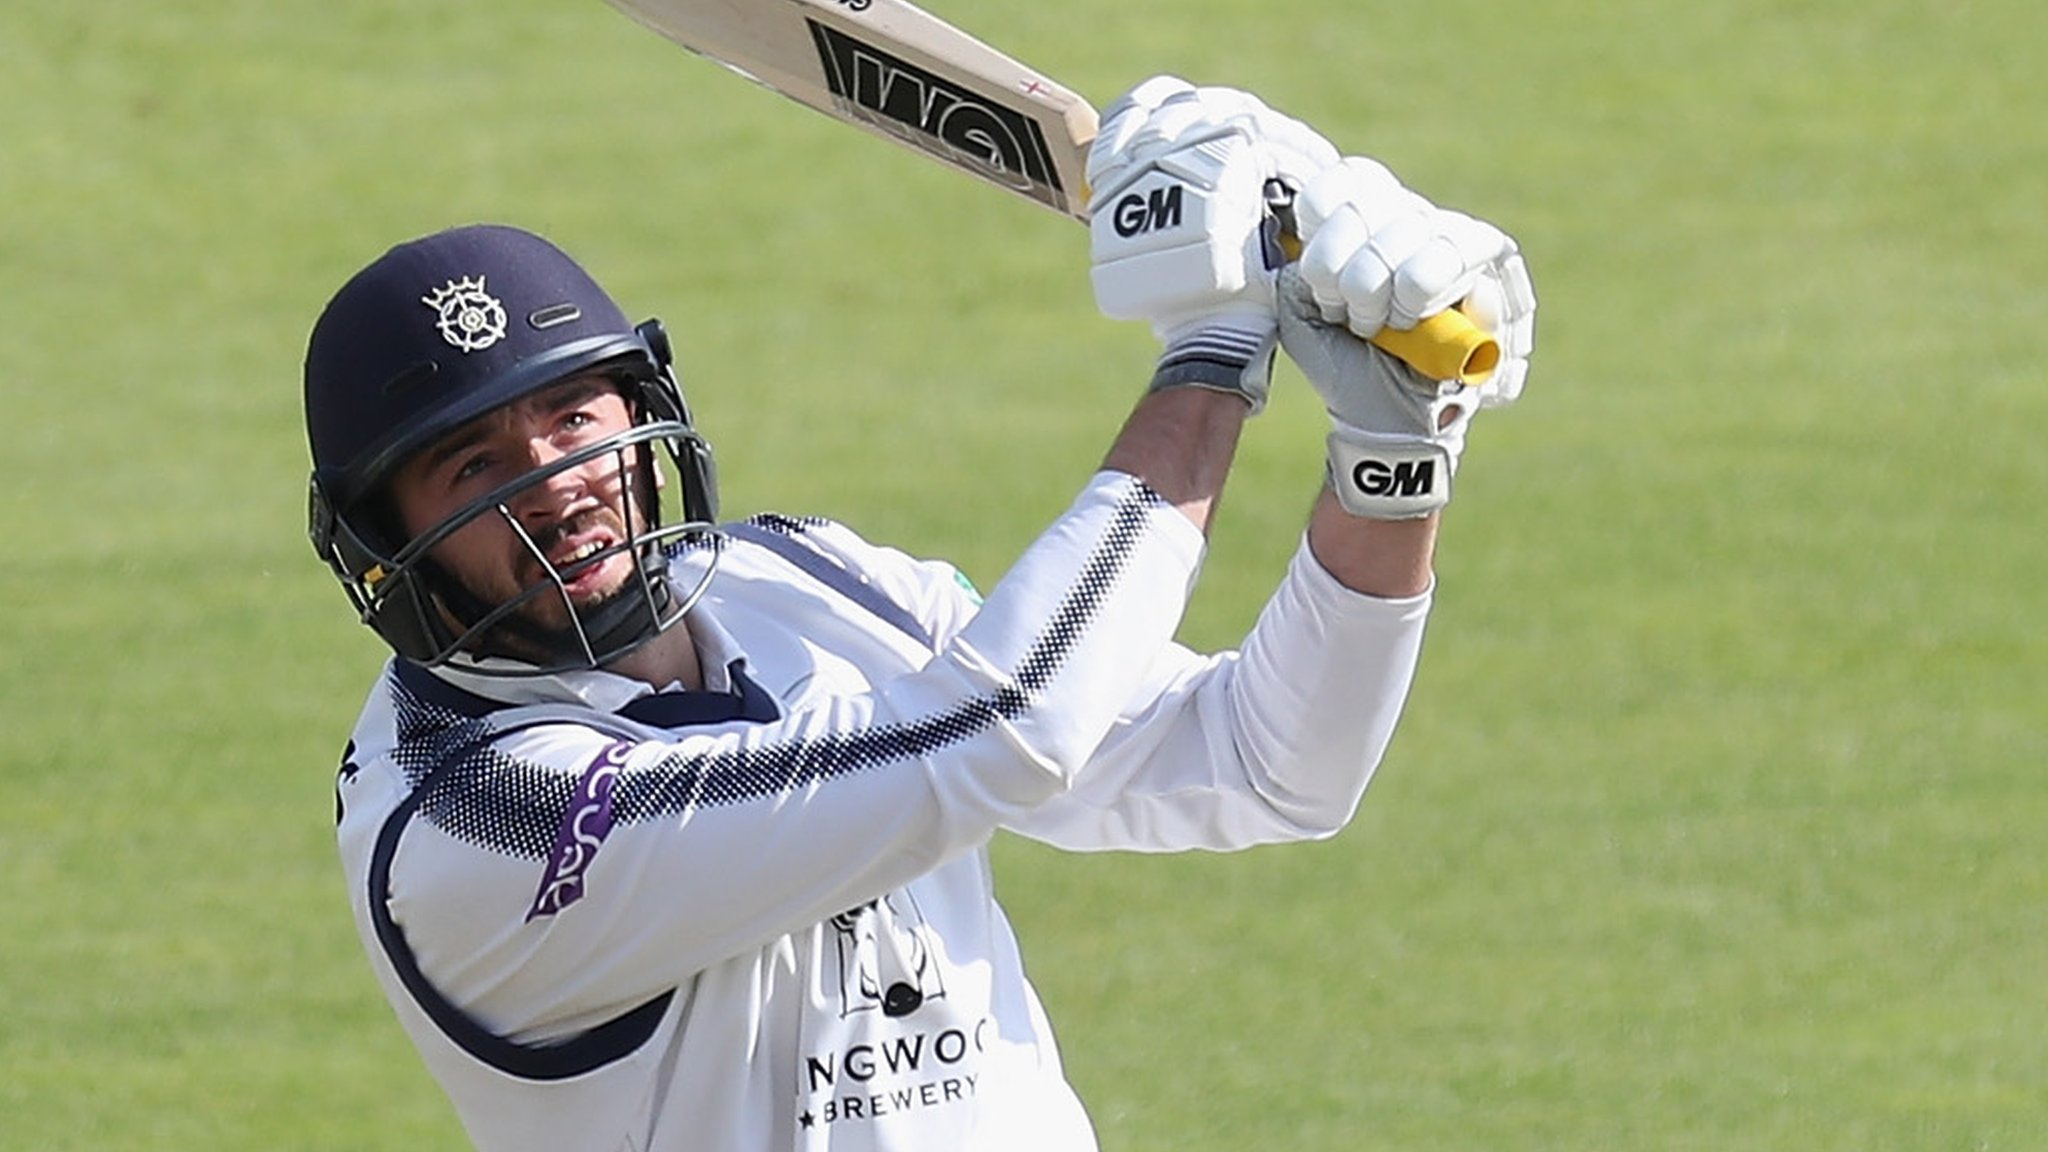 County Championship: Hampshire captain James Vince stars with 147 v Notts